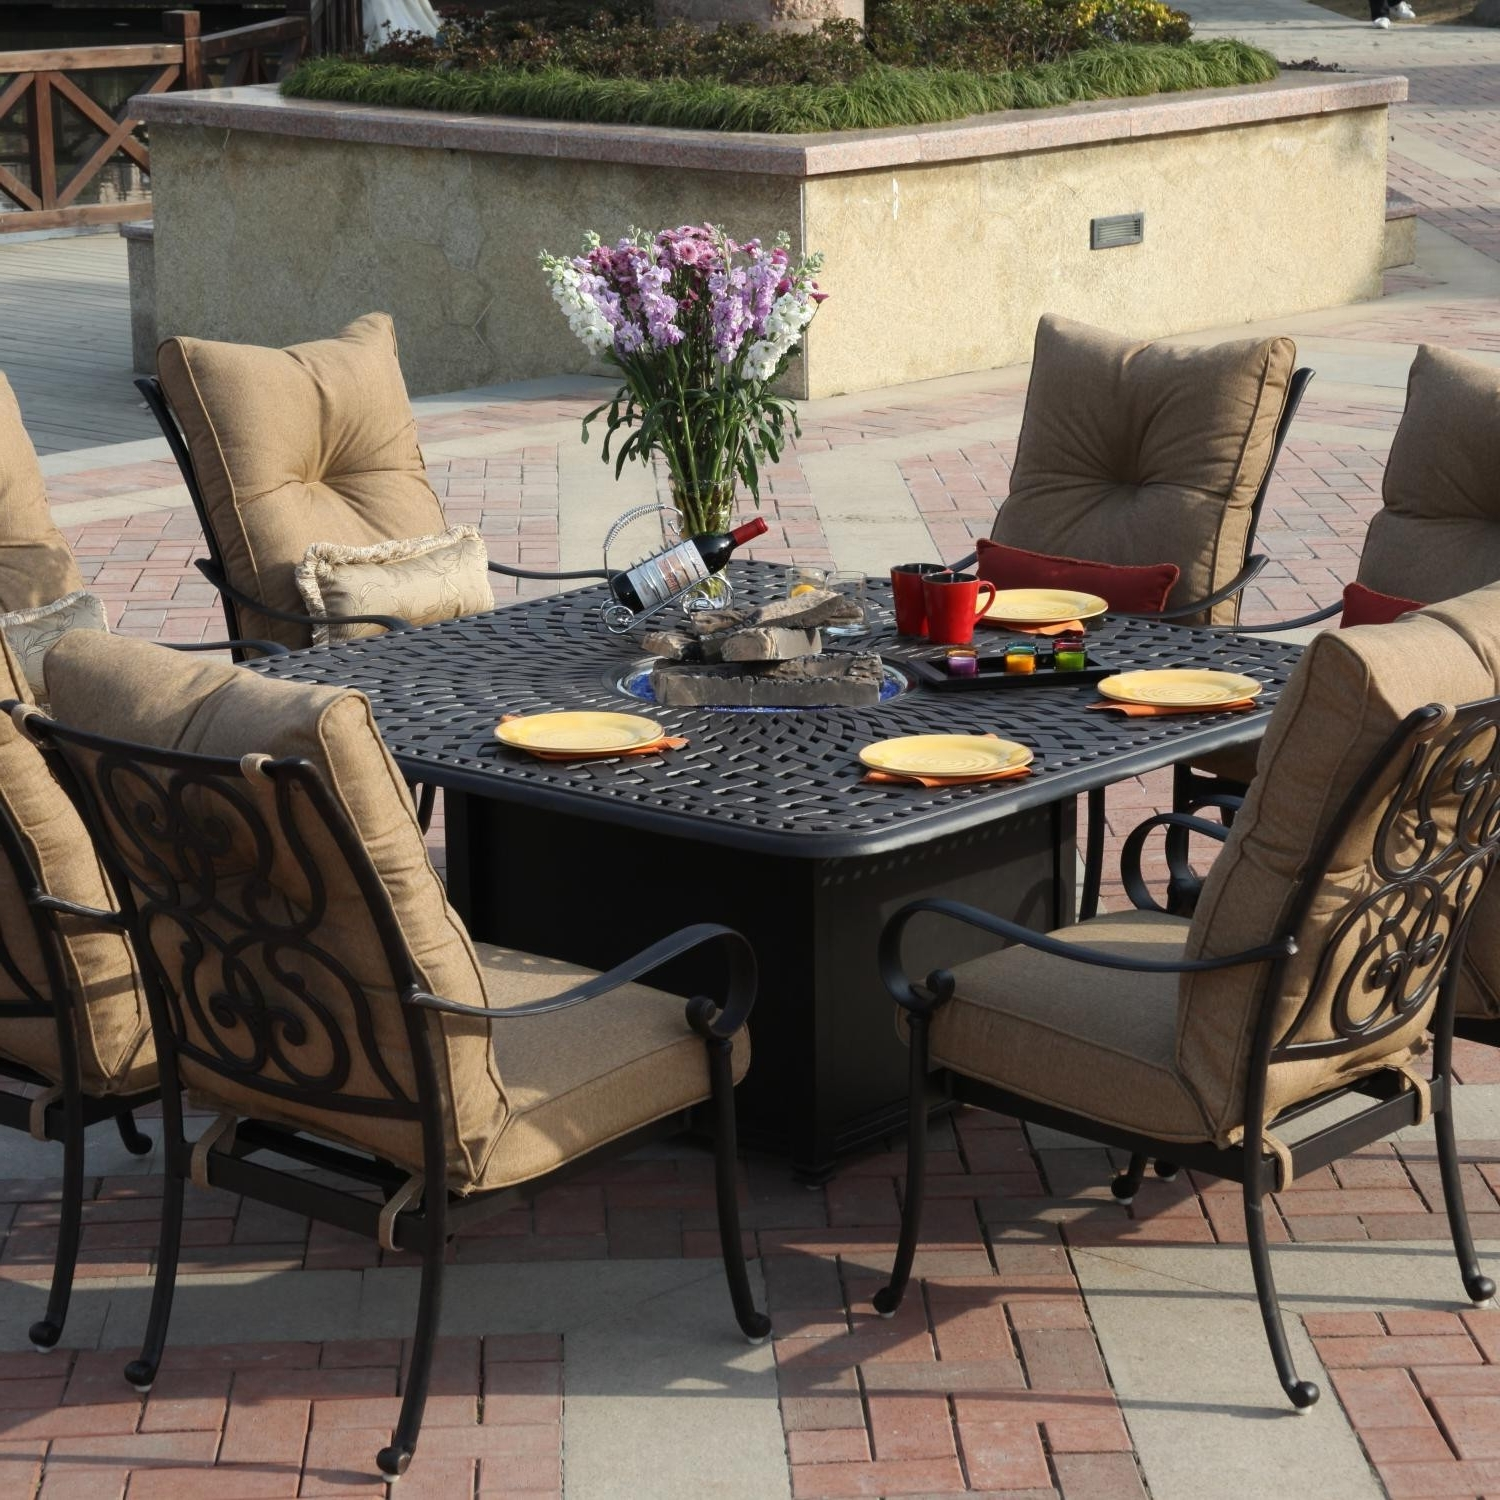 Patio Conversation Sets With Fire Pit Table Intended For Current New Wicker Patio Sets With Fire Pit Conversation Sets Fire Pit Table (View 11 of 20)